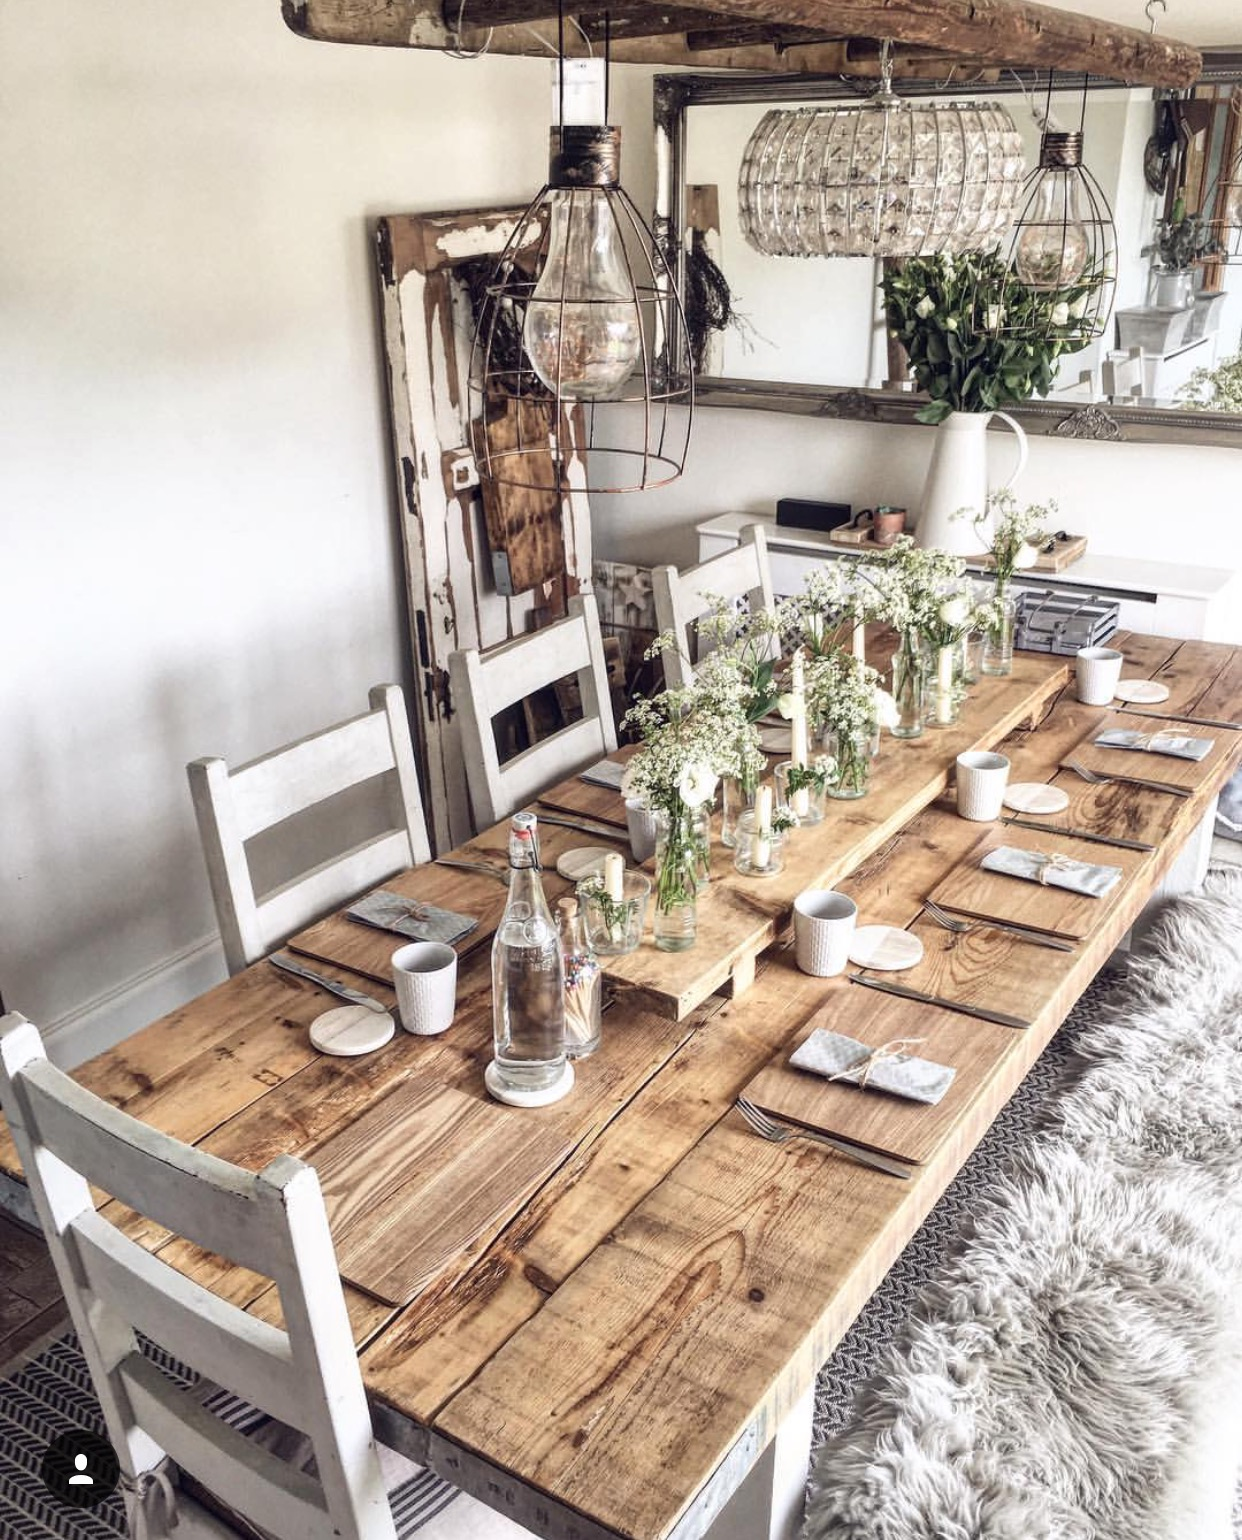 Plinths are a great table addition, use your imagination on how to style it - Instagram:  @wabhome